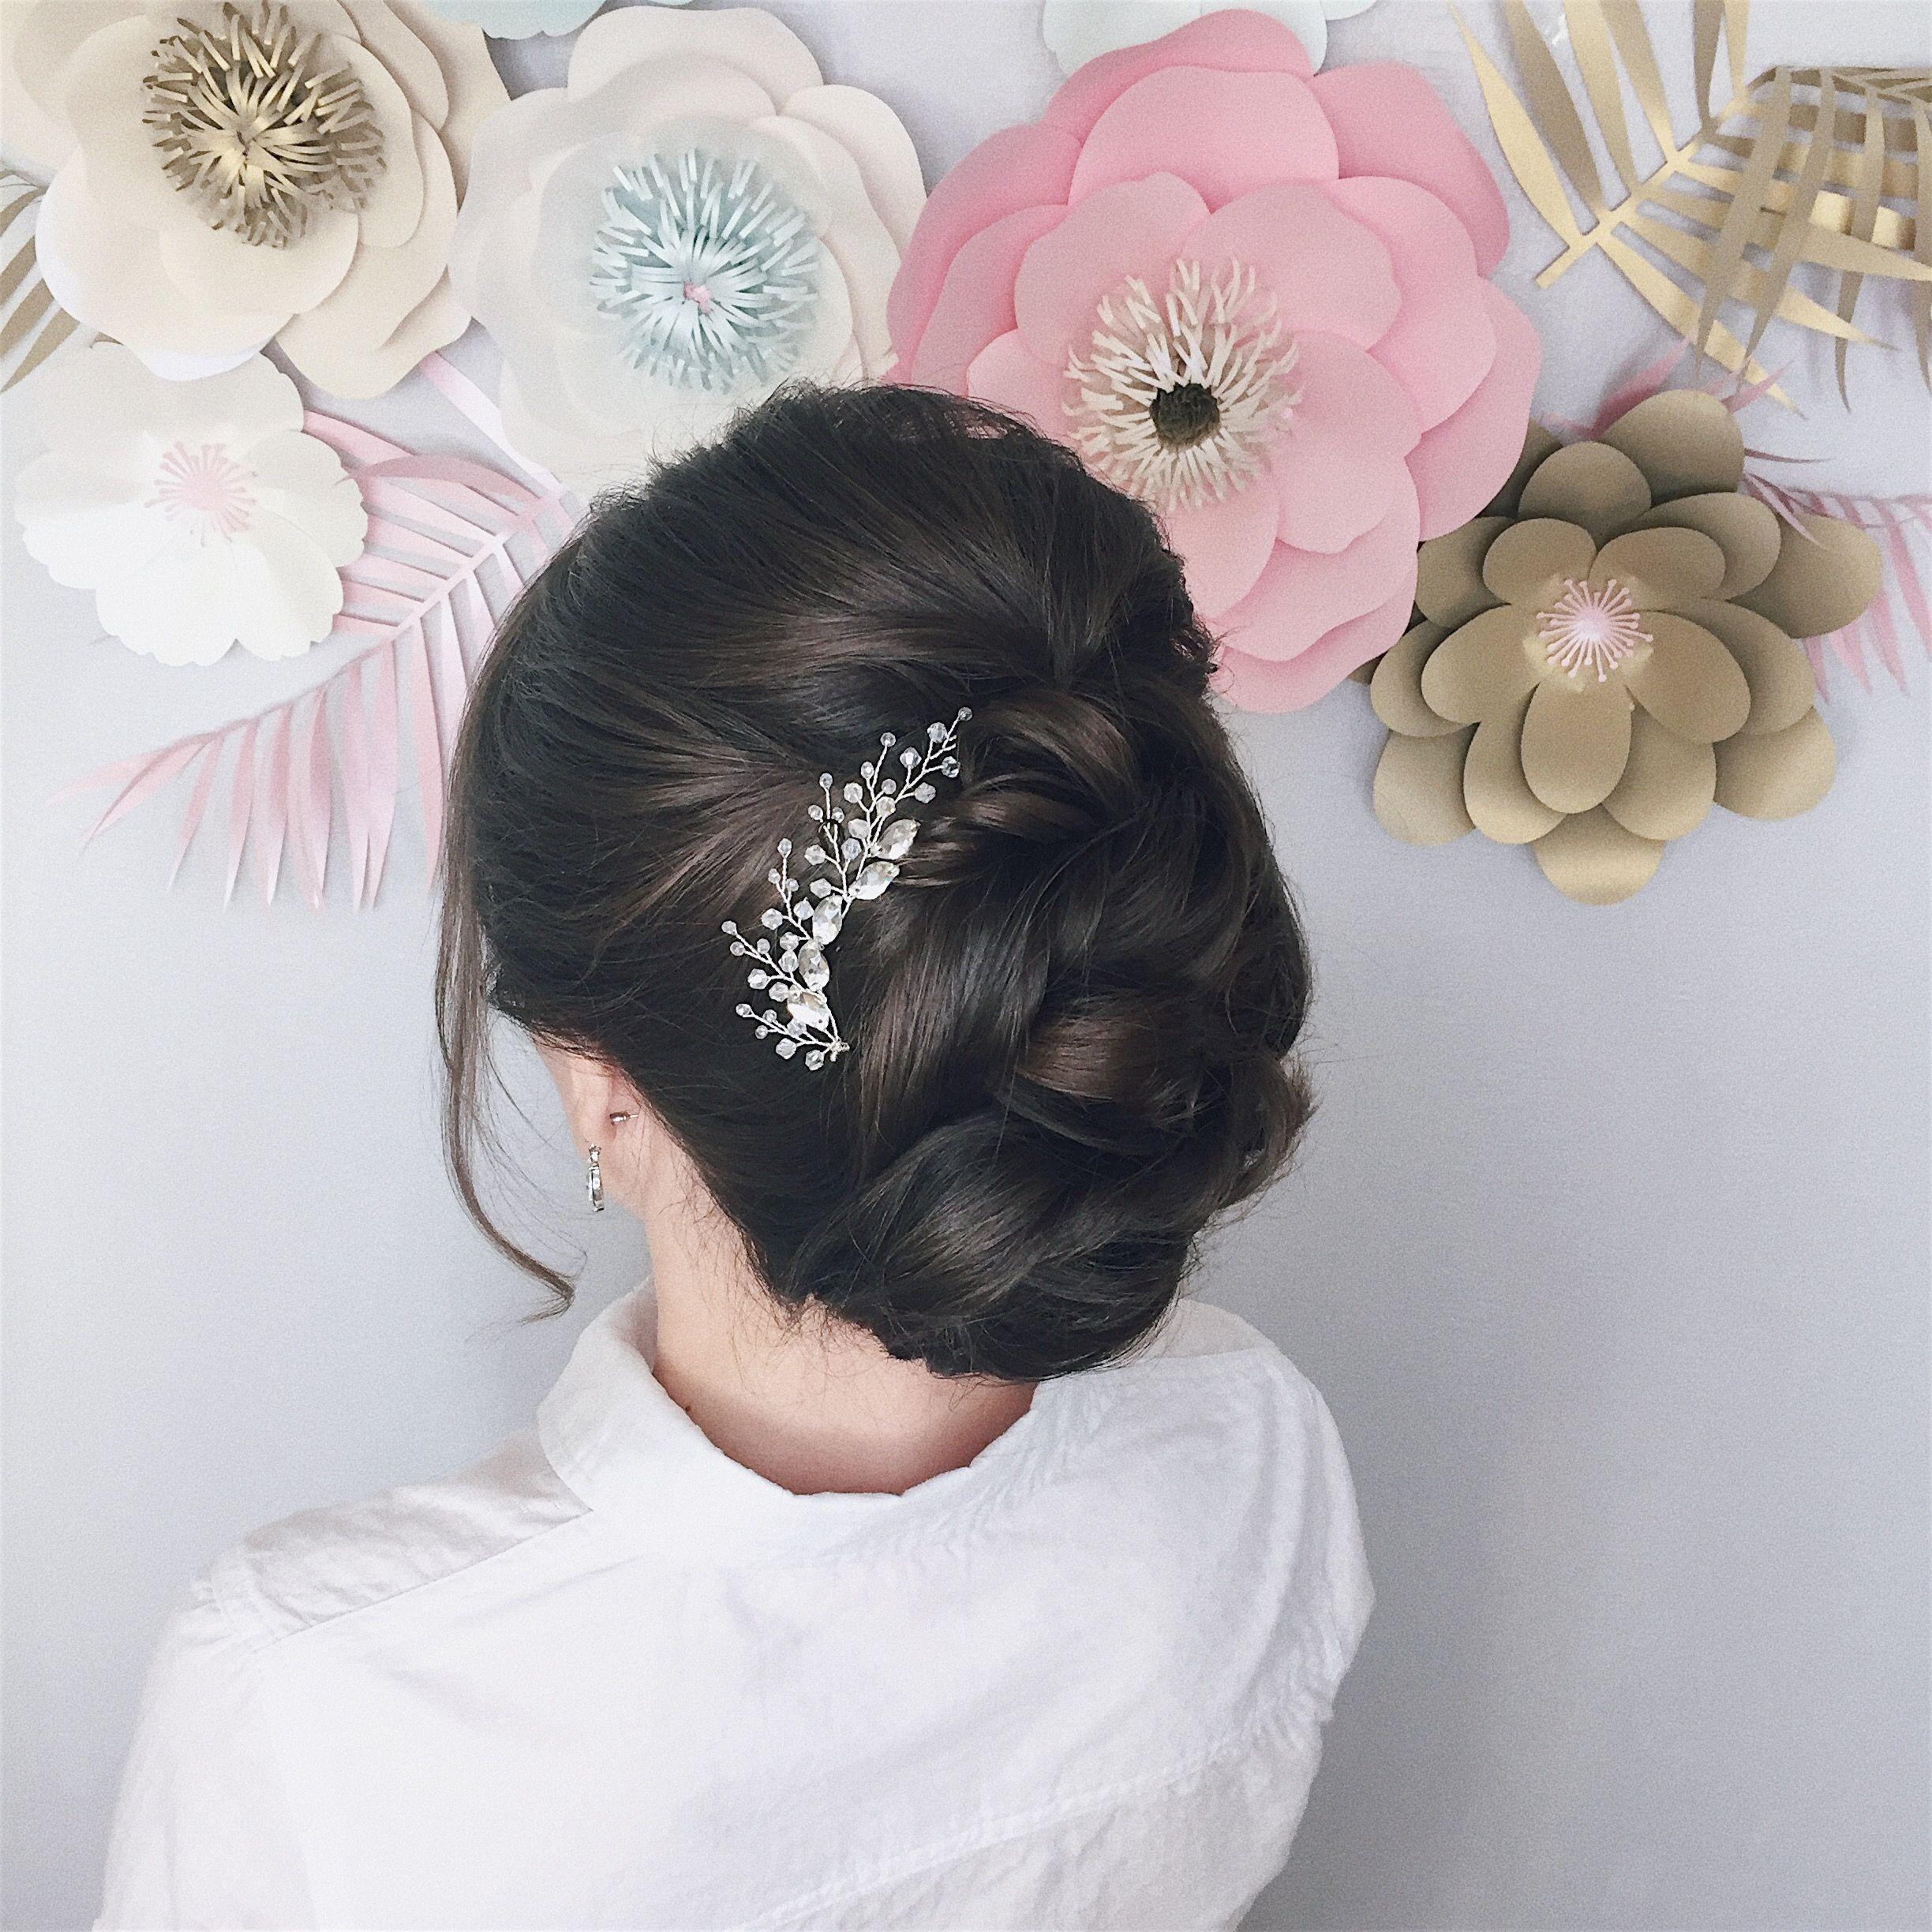 Hairstyle for short hair, wedding